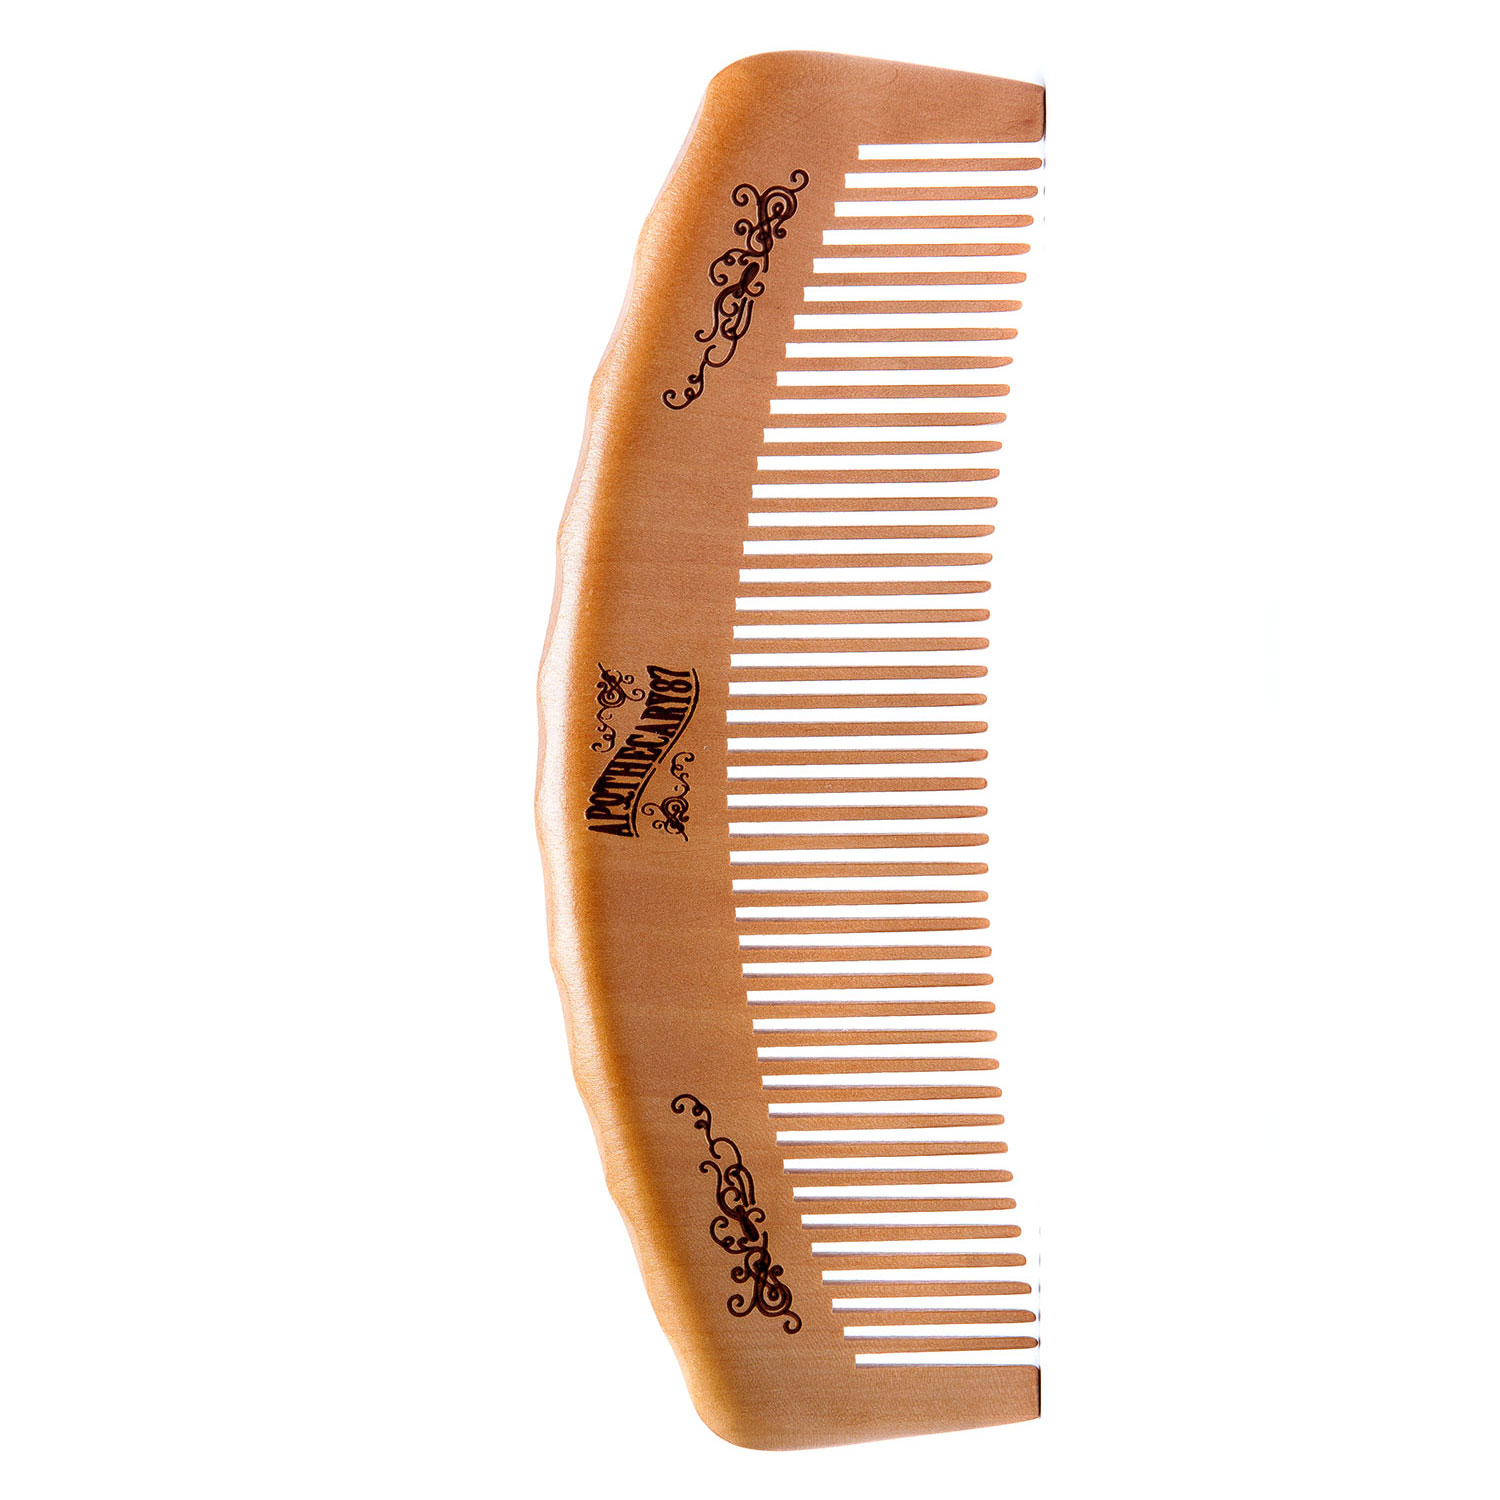 Apothecary87 Grooming - The Man Club Barber Comb